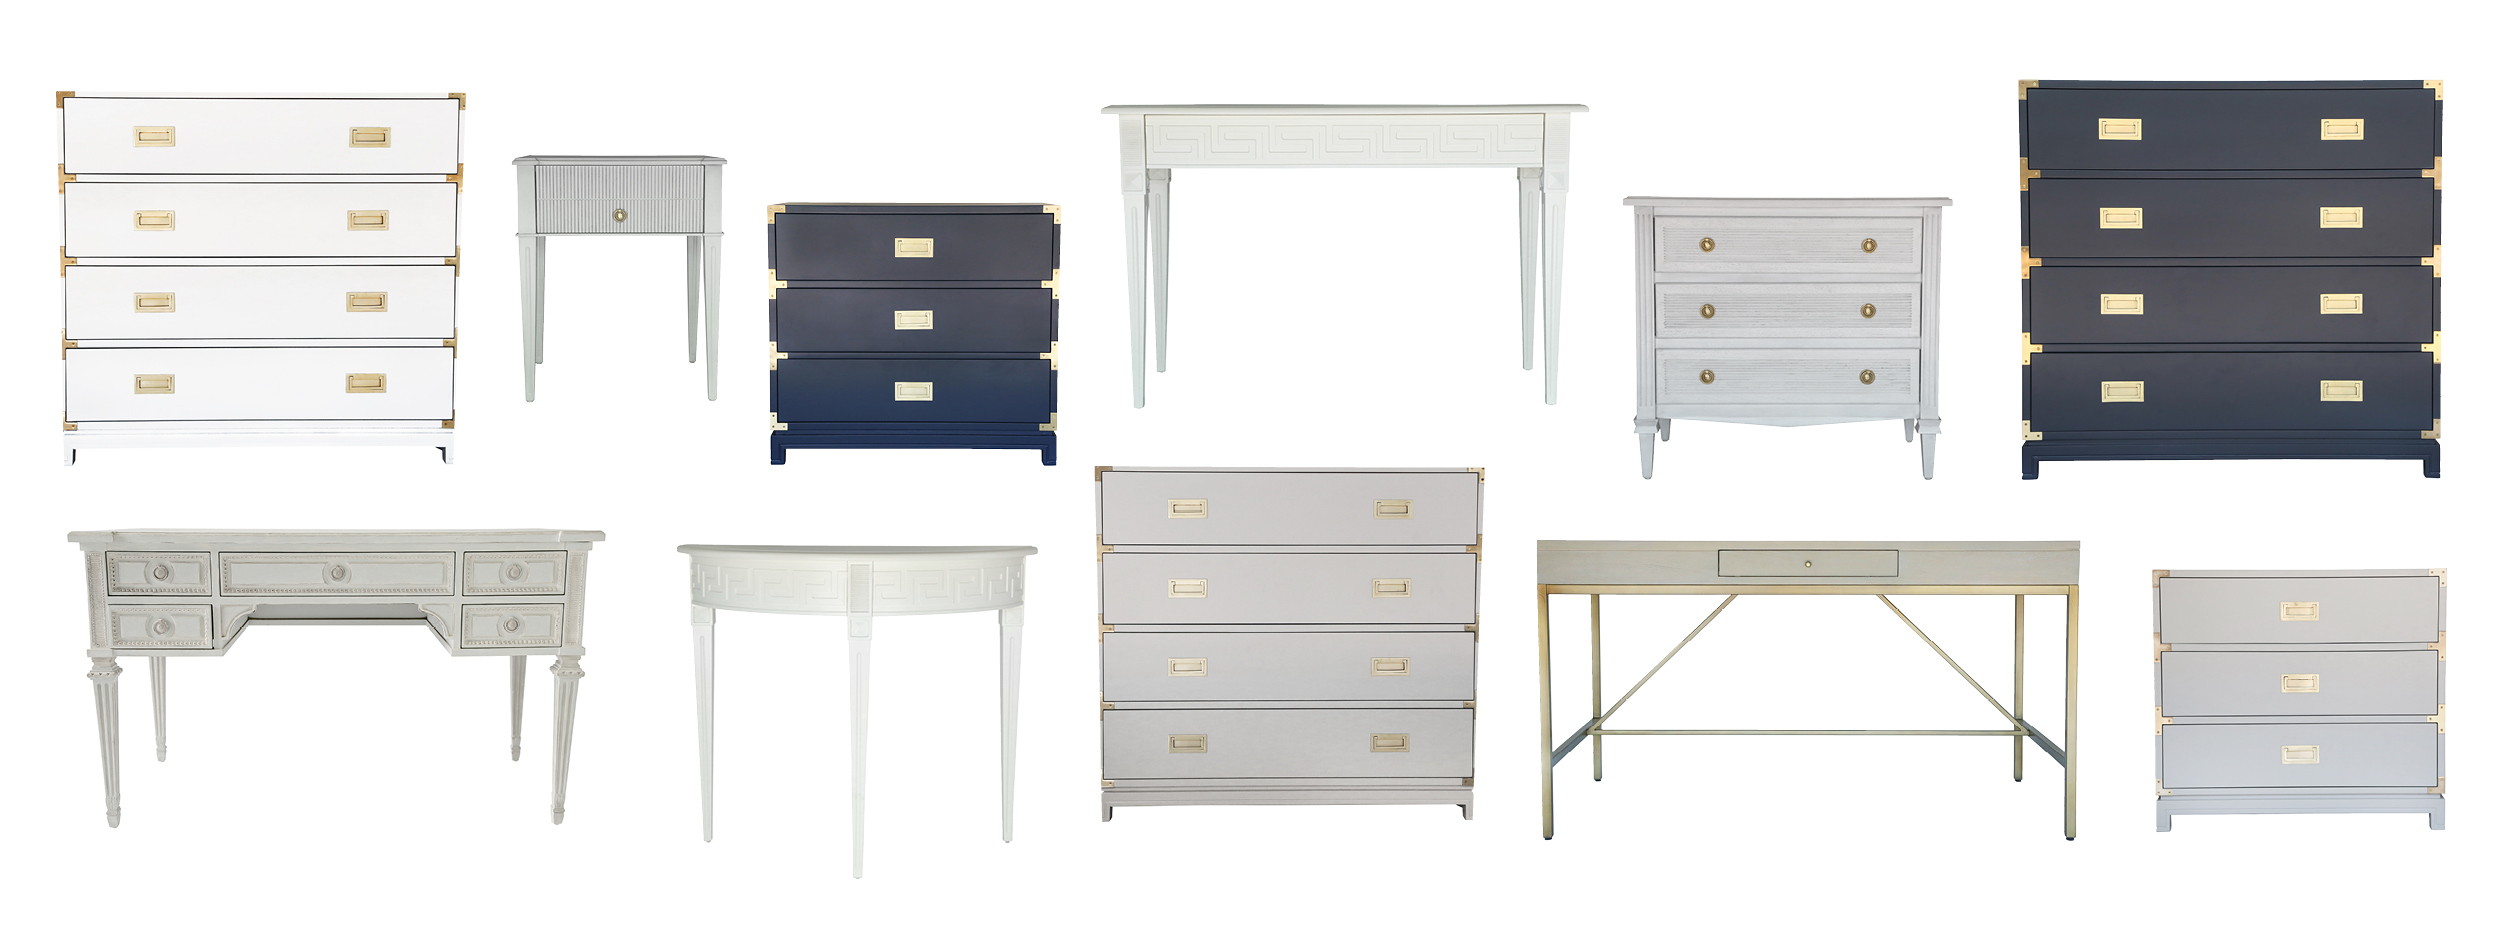 Top Row:   1.  Large Carlyle Campaign Dresser, White   2.  Liam End Table   3.  Small Carlyle Campaign Dresser, Navy   4.  Athena Console   5.  Liam Dresser   6.  Large Carlyle Campaign Dresser, Navy     Bottom Row:   1.  Aria Desk, Swedish Grey   2.  Athena Demilune   3.  Large Carlyle Campaign Dresser, Grey   4.  Carlyle Desk, Grey   5.  Small Carlyle Campaign Dresser, Grey